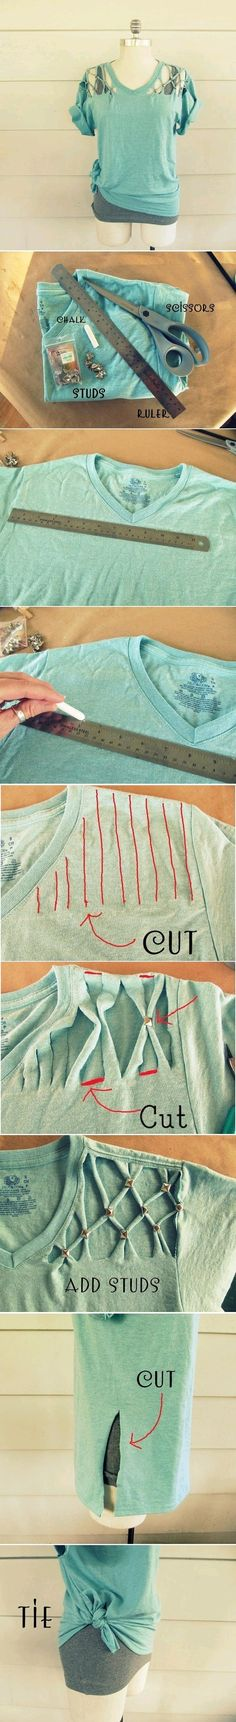 DIY Cool Studded T-Shirt